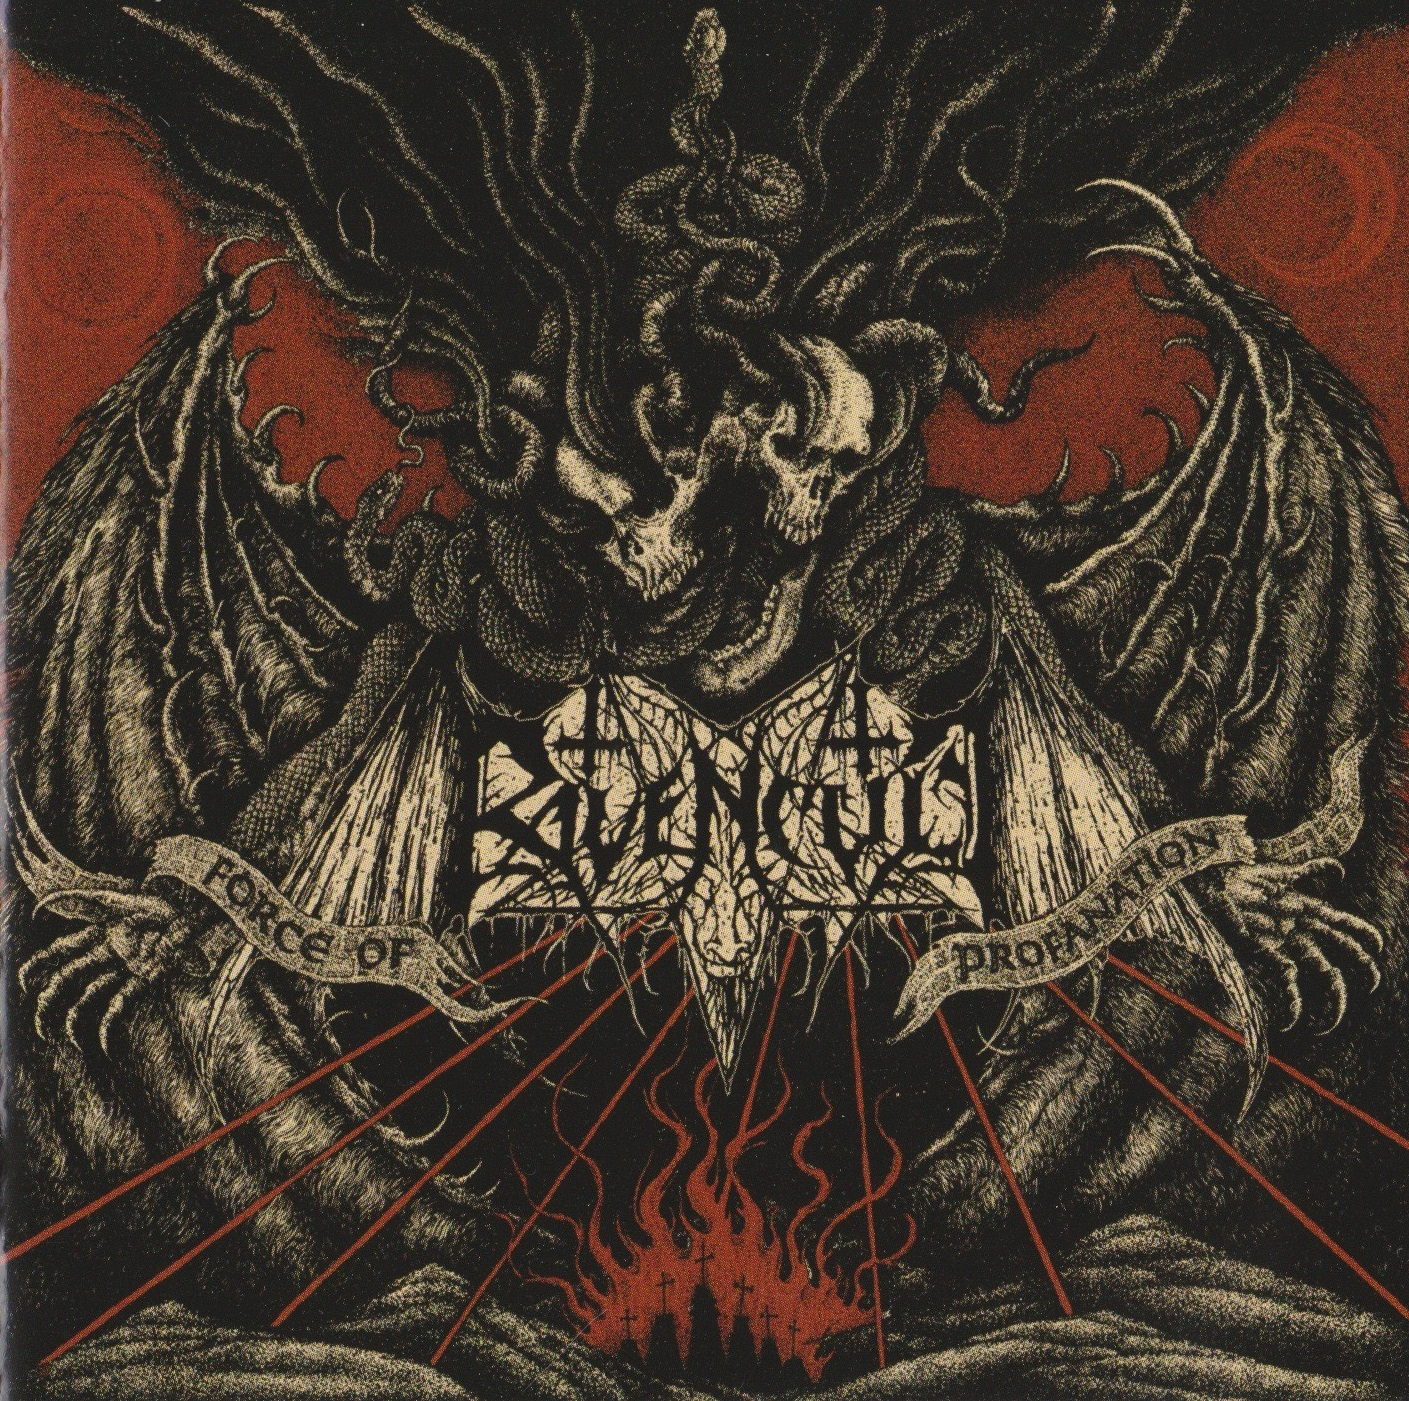 Ravencult — Force of Profanation (2016)